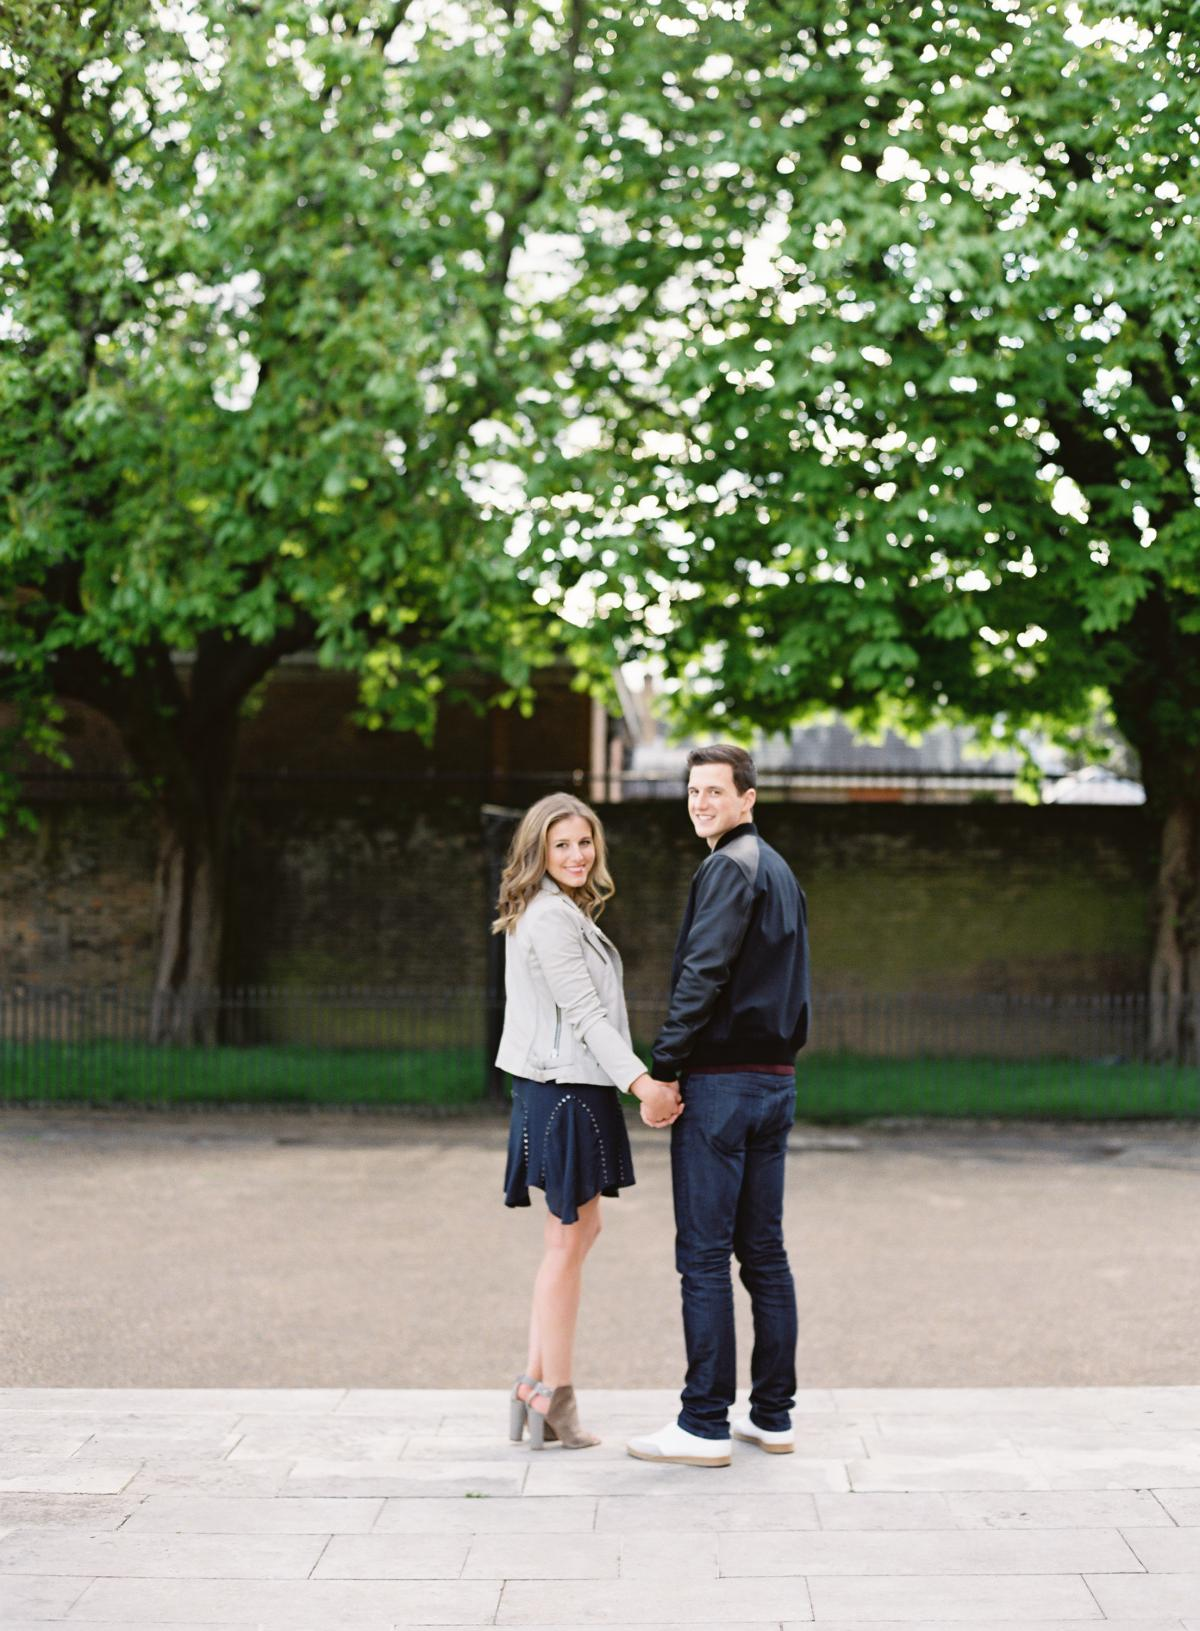 London England Engagement Photos Omalley Photographers 0011